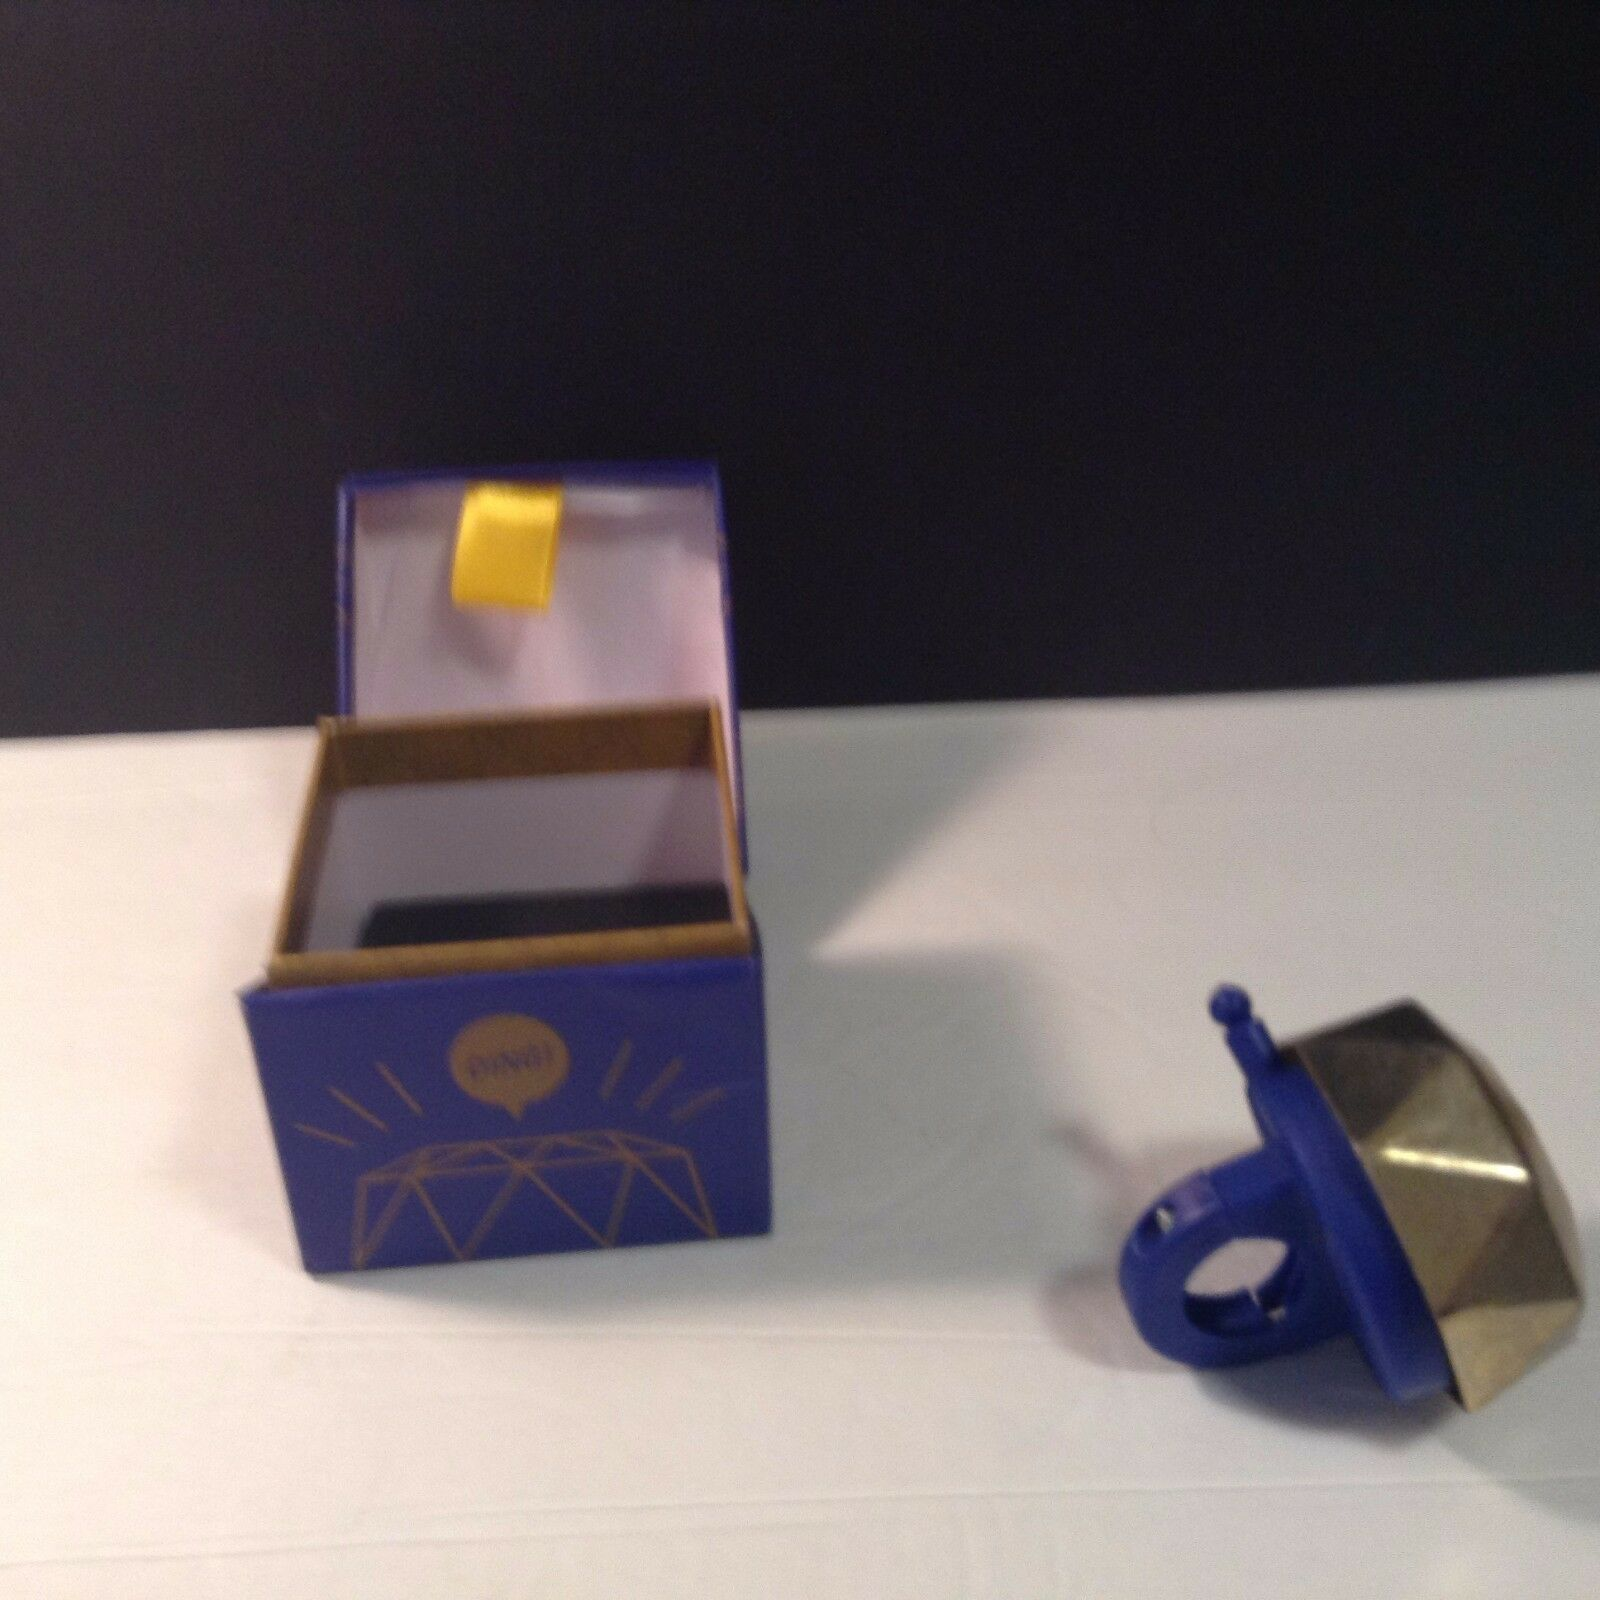 kikkerland RING TO IT Bike Bicycle Bell #BB40 Golden Jewel boxed StudioFrisco